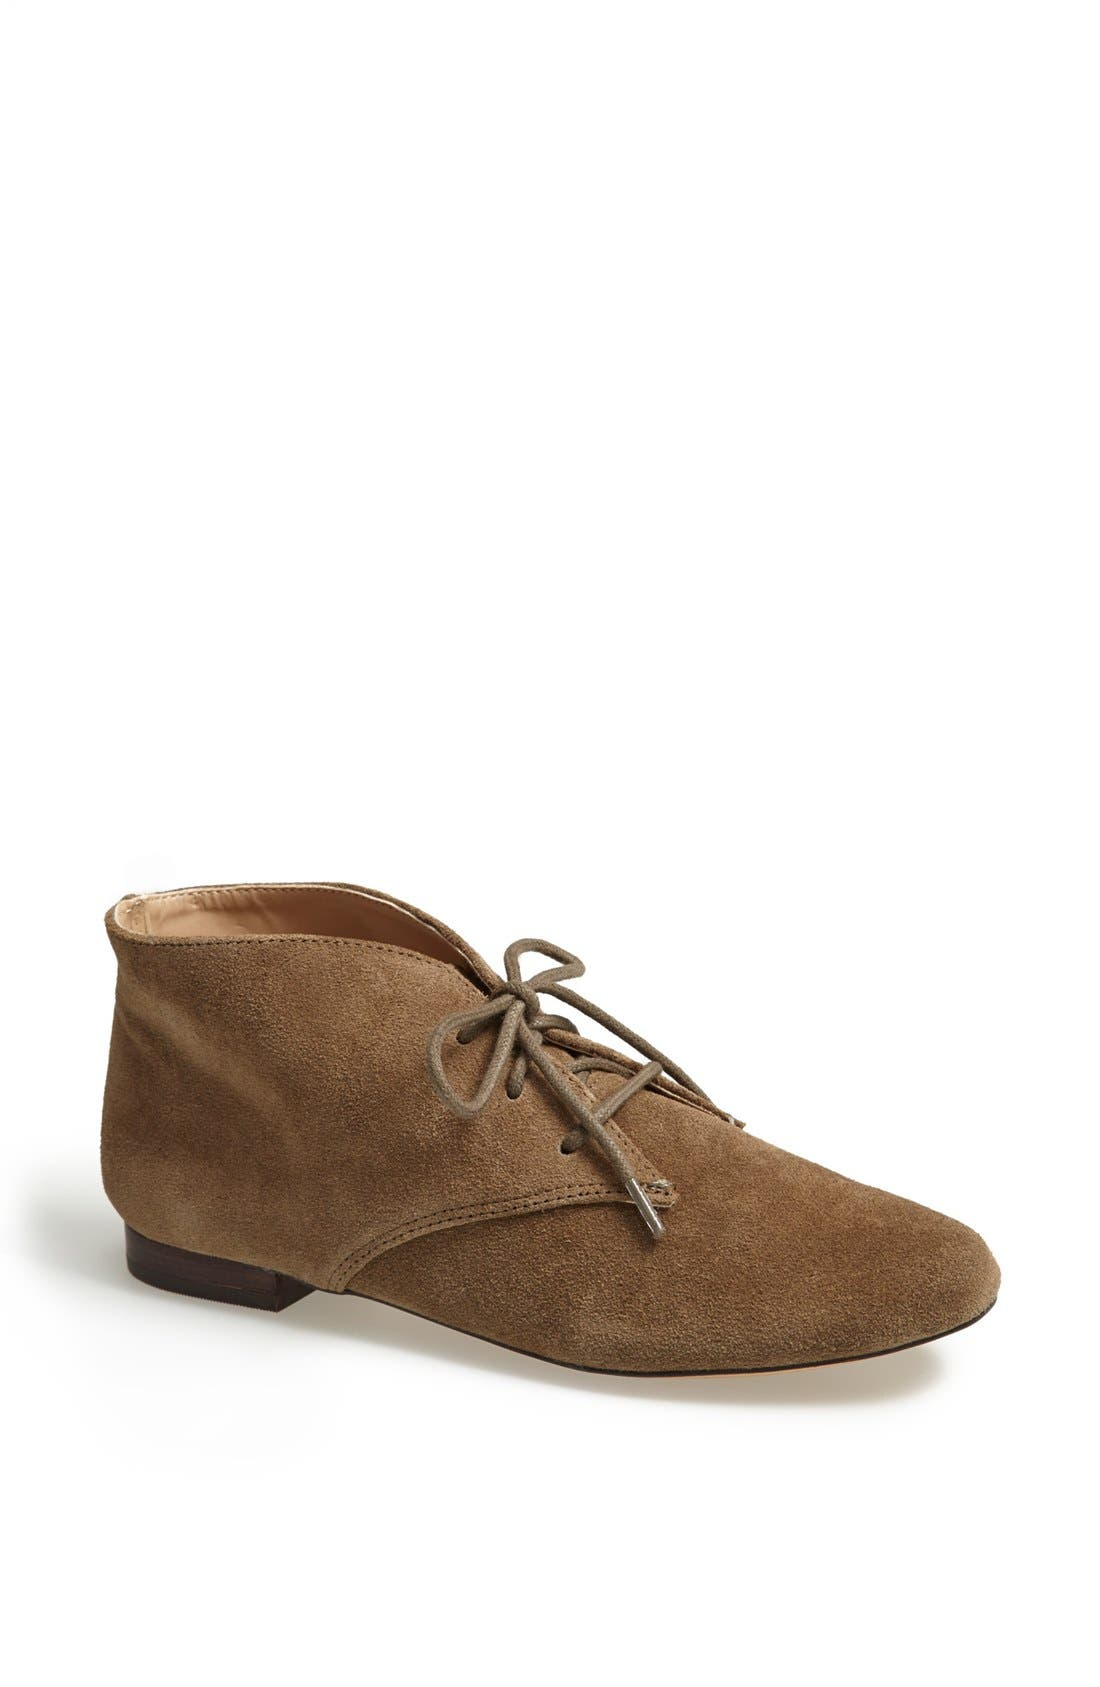 Main Image - Sole Society 'Chelsee' Bootie